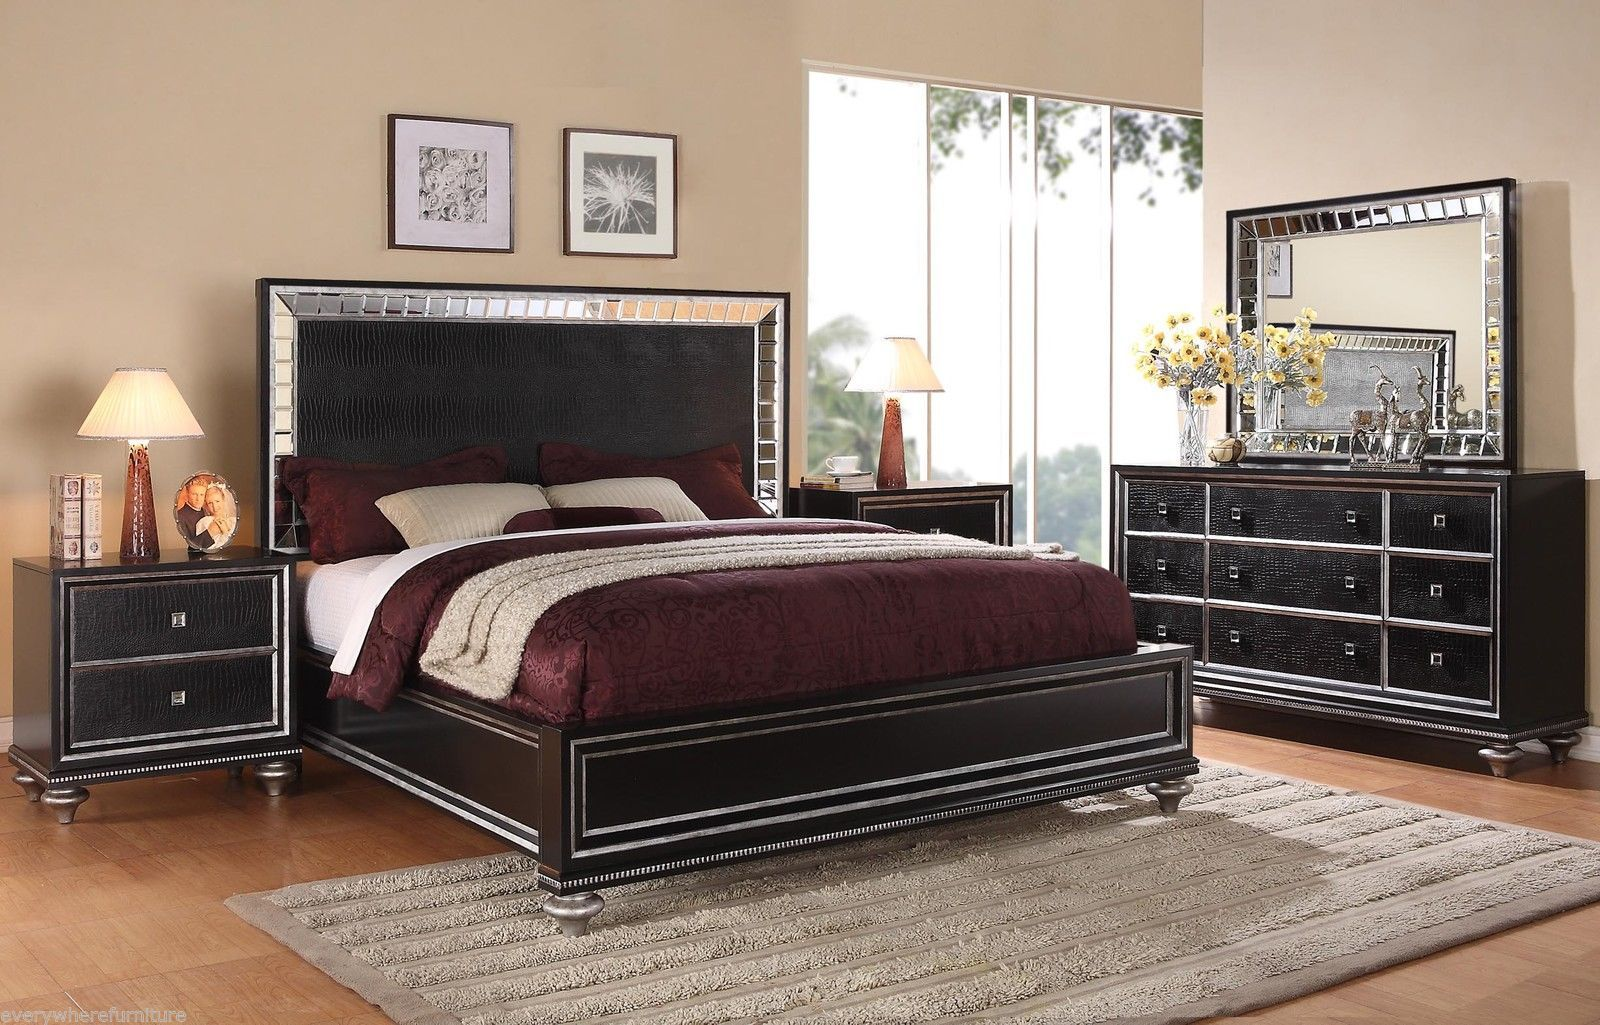 wynwood glam black mirrored king size mansion bed bedroom furniture hollywood besta. Black Bedroom Furniture Sets. Home Design Ideas